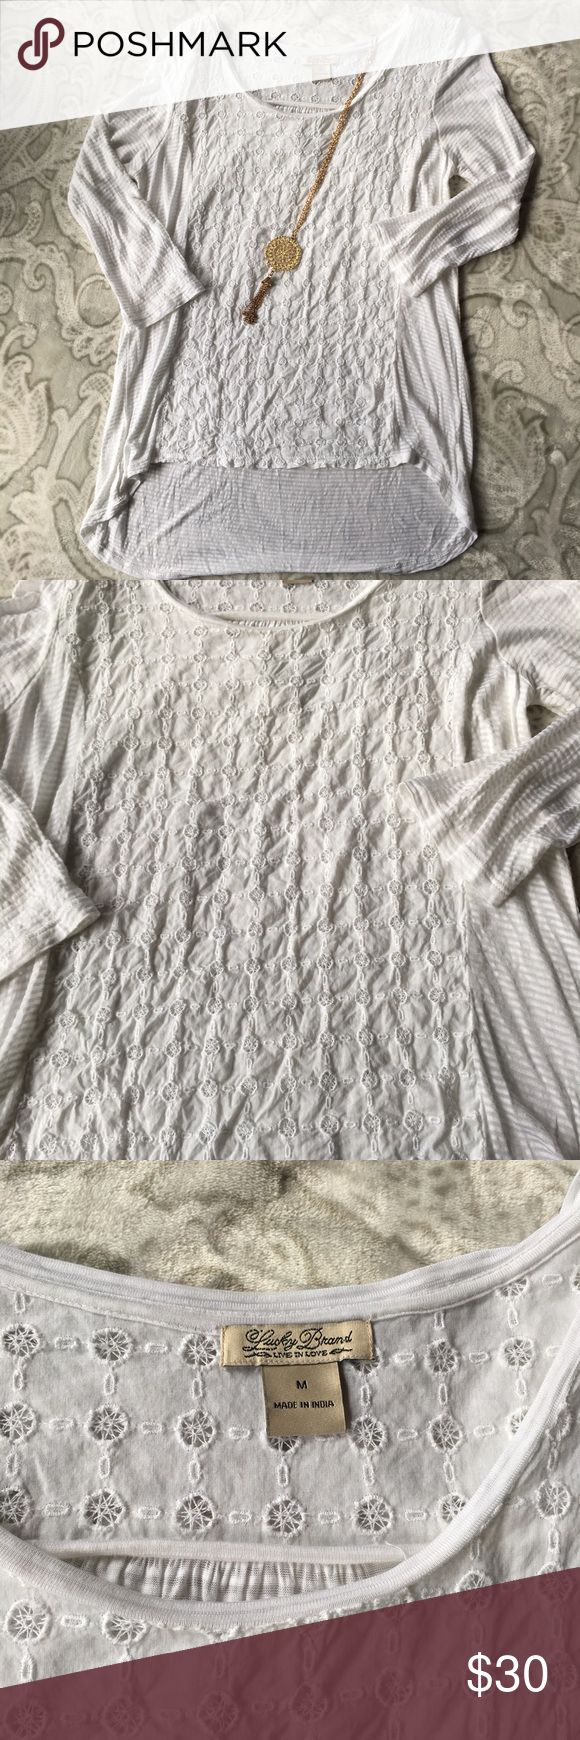 FINAL PRICE DROP!! Nice lucky Brand top. ❤️ Lucky 🍀Brand top. White with lace. No holes or stains. Lucky Brand Tops